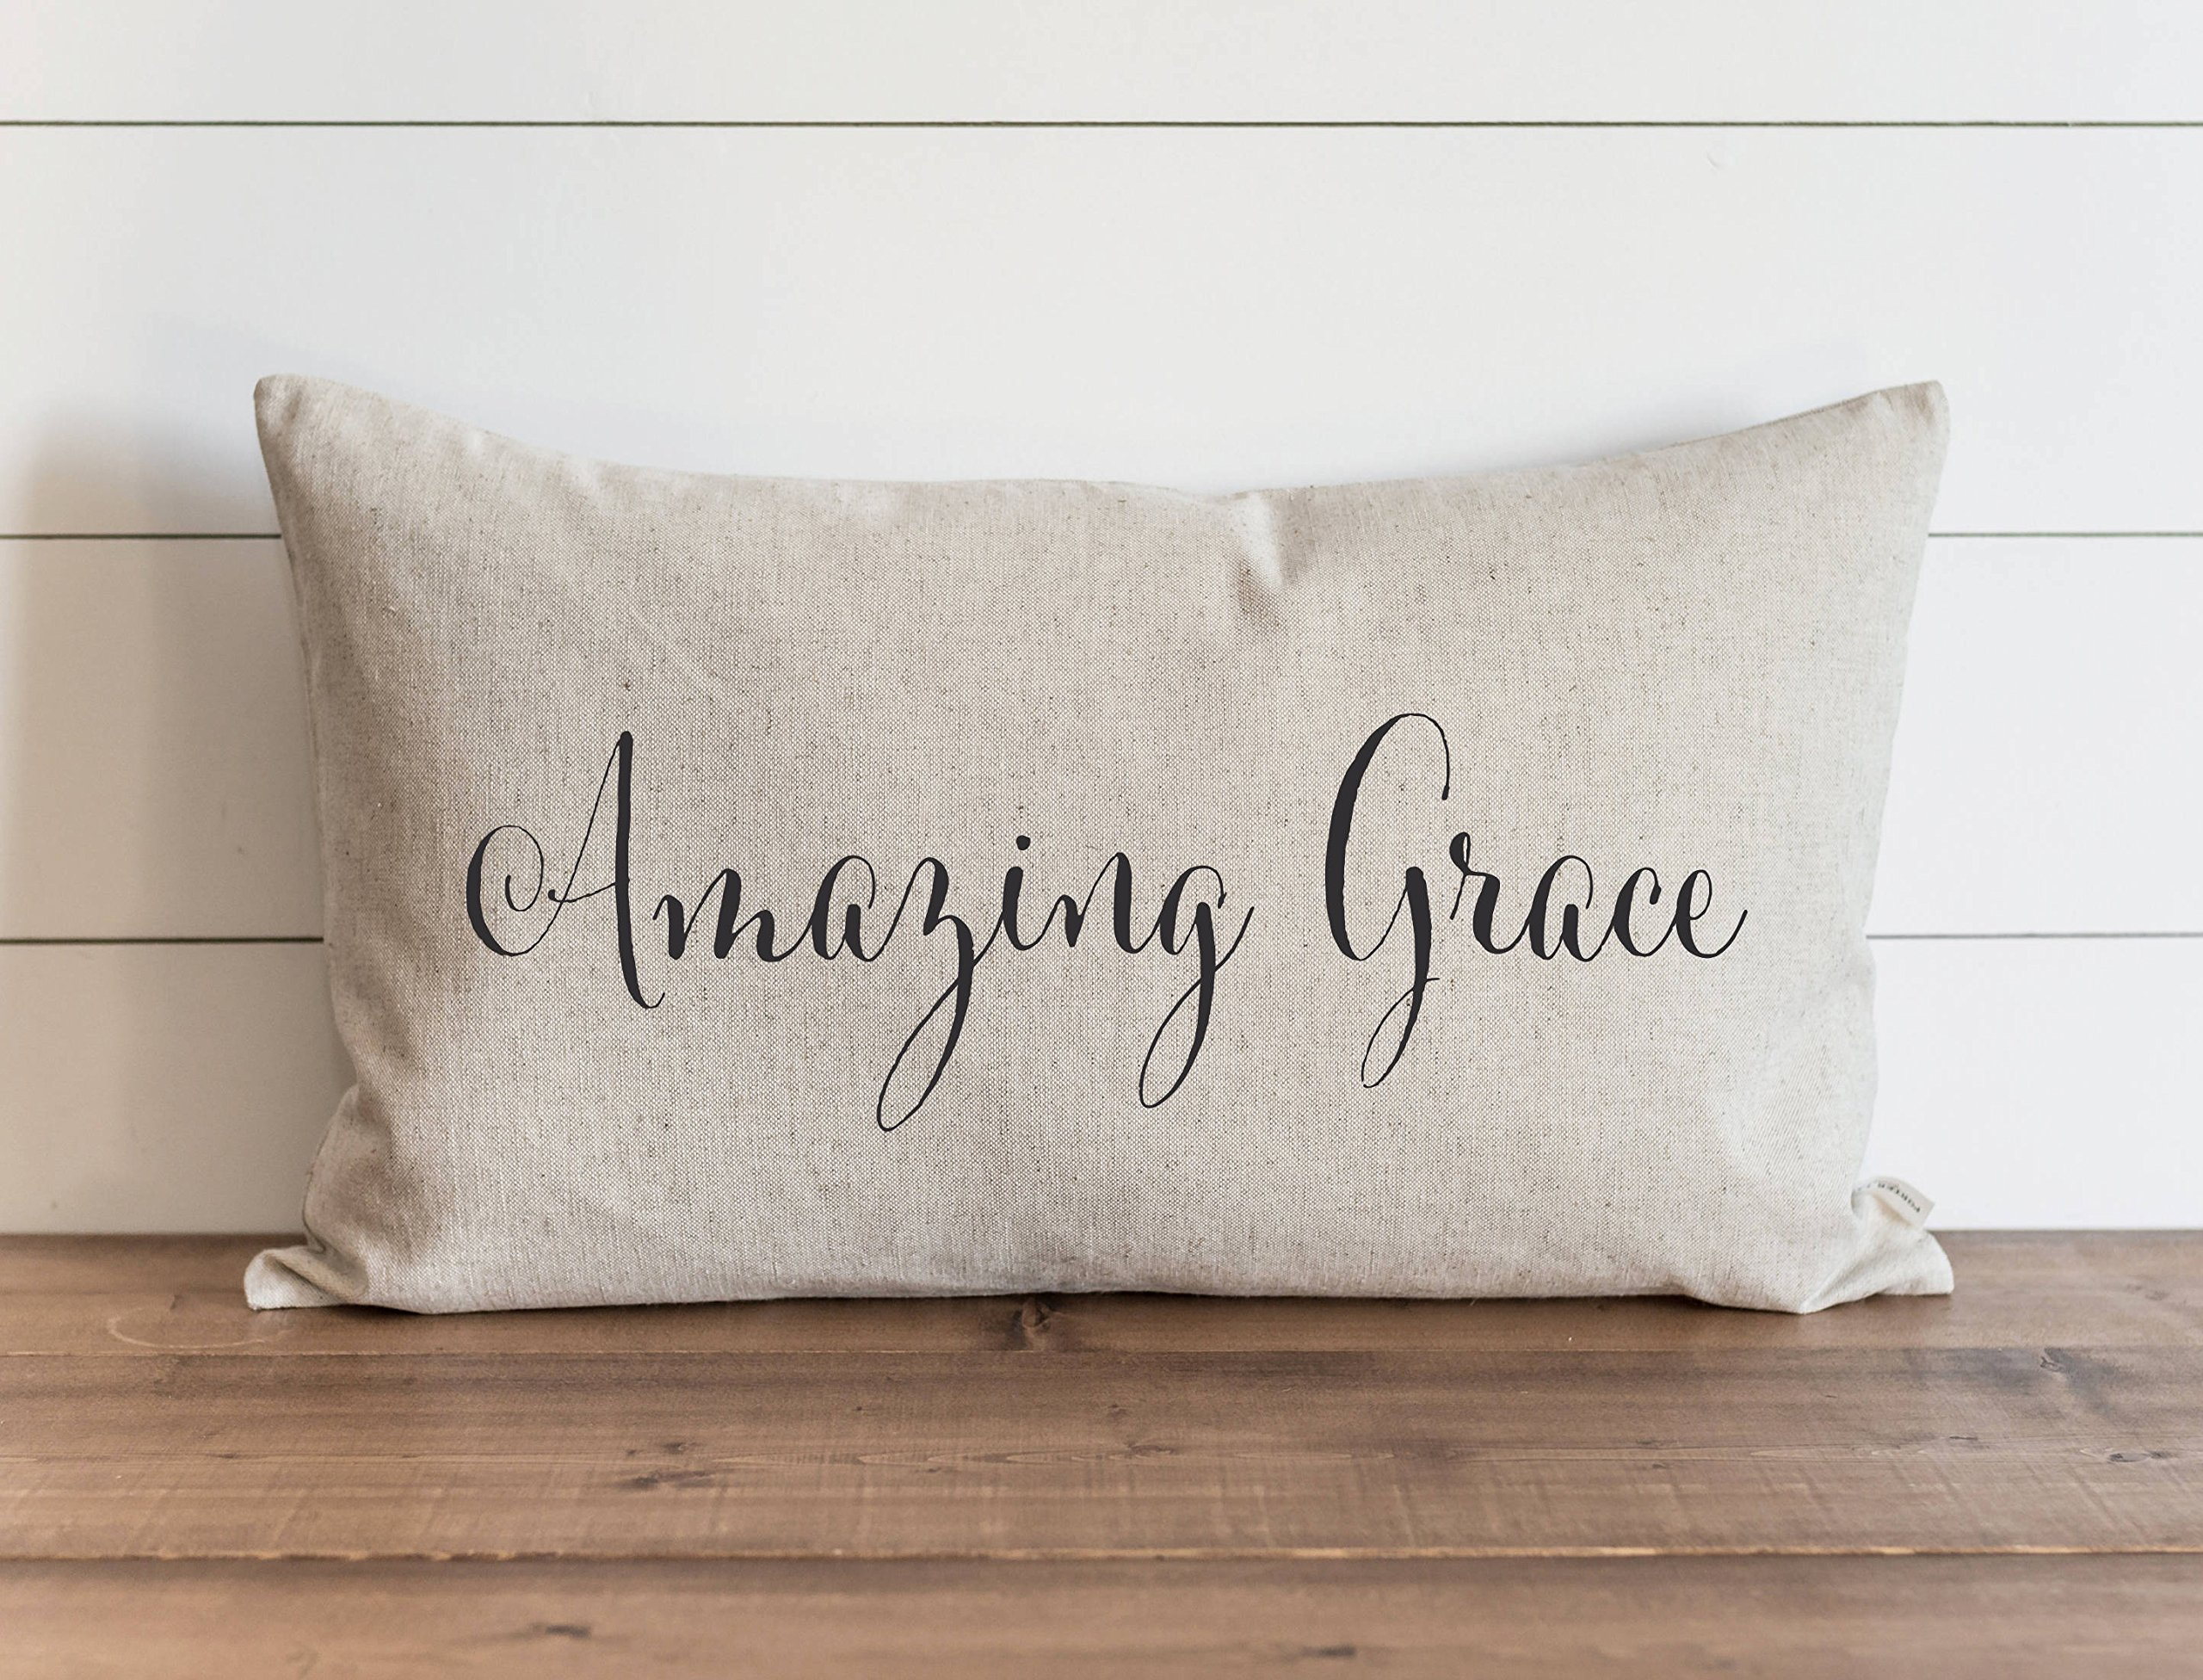 TINA-R Amazing Grace 16 x 24 Inch Pillow Cover Everyday How Sweet The Sound Throw Pillow Gift Accent Pillow Nursery Faith